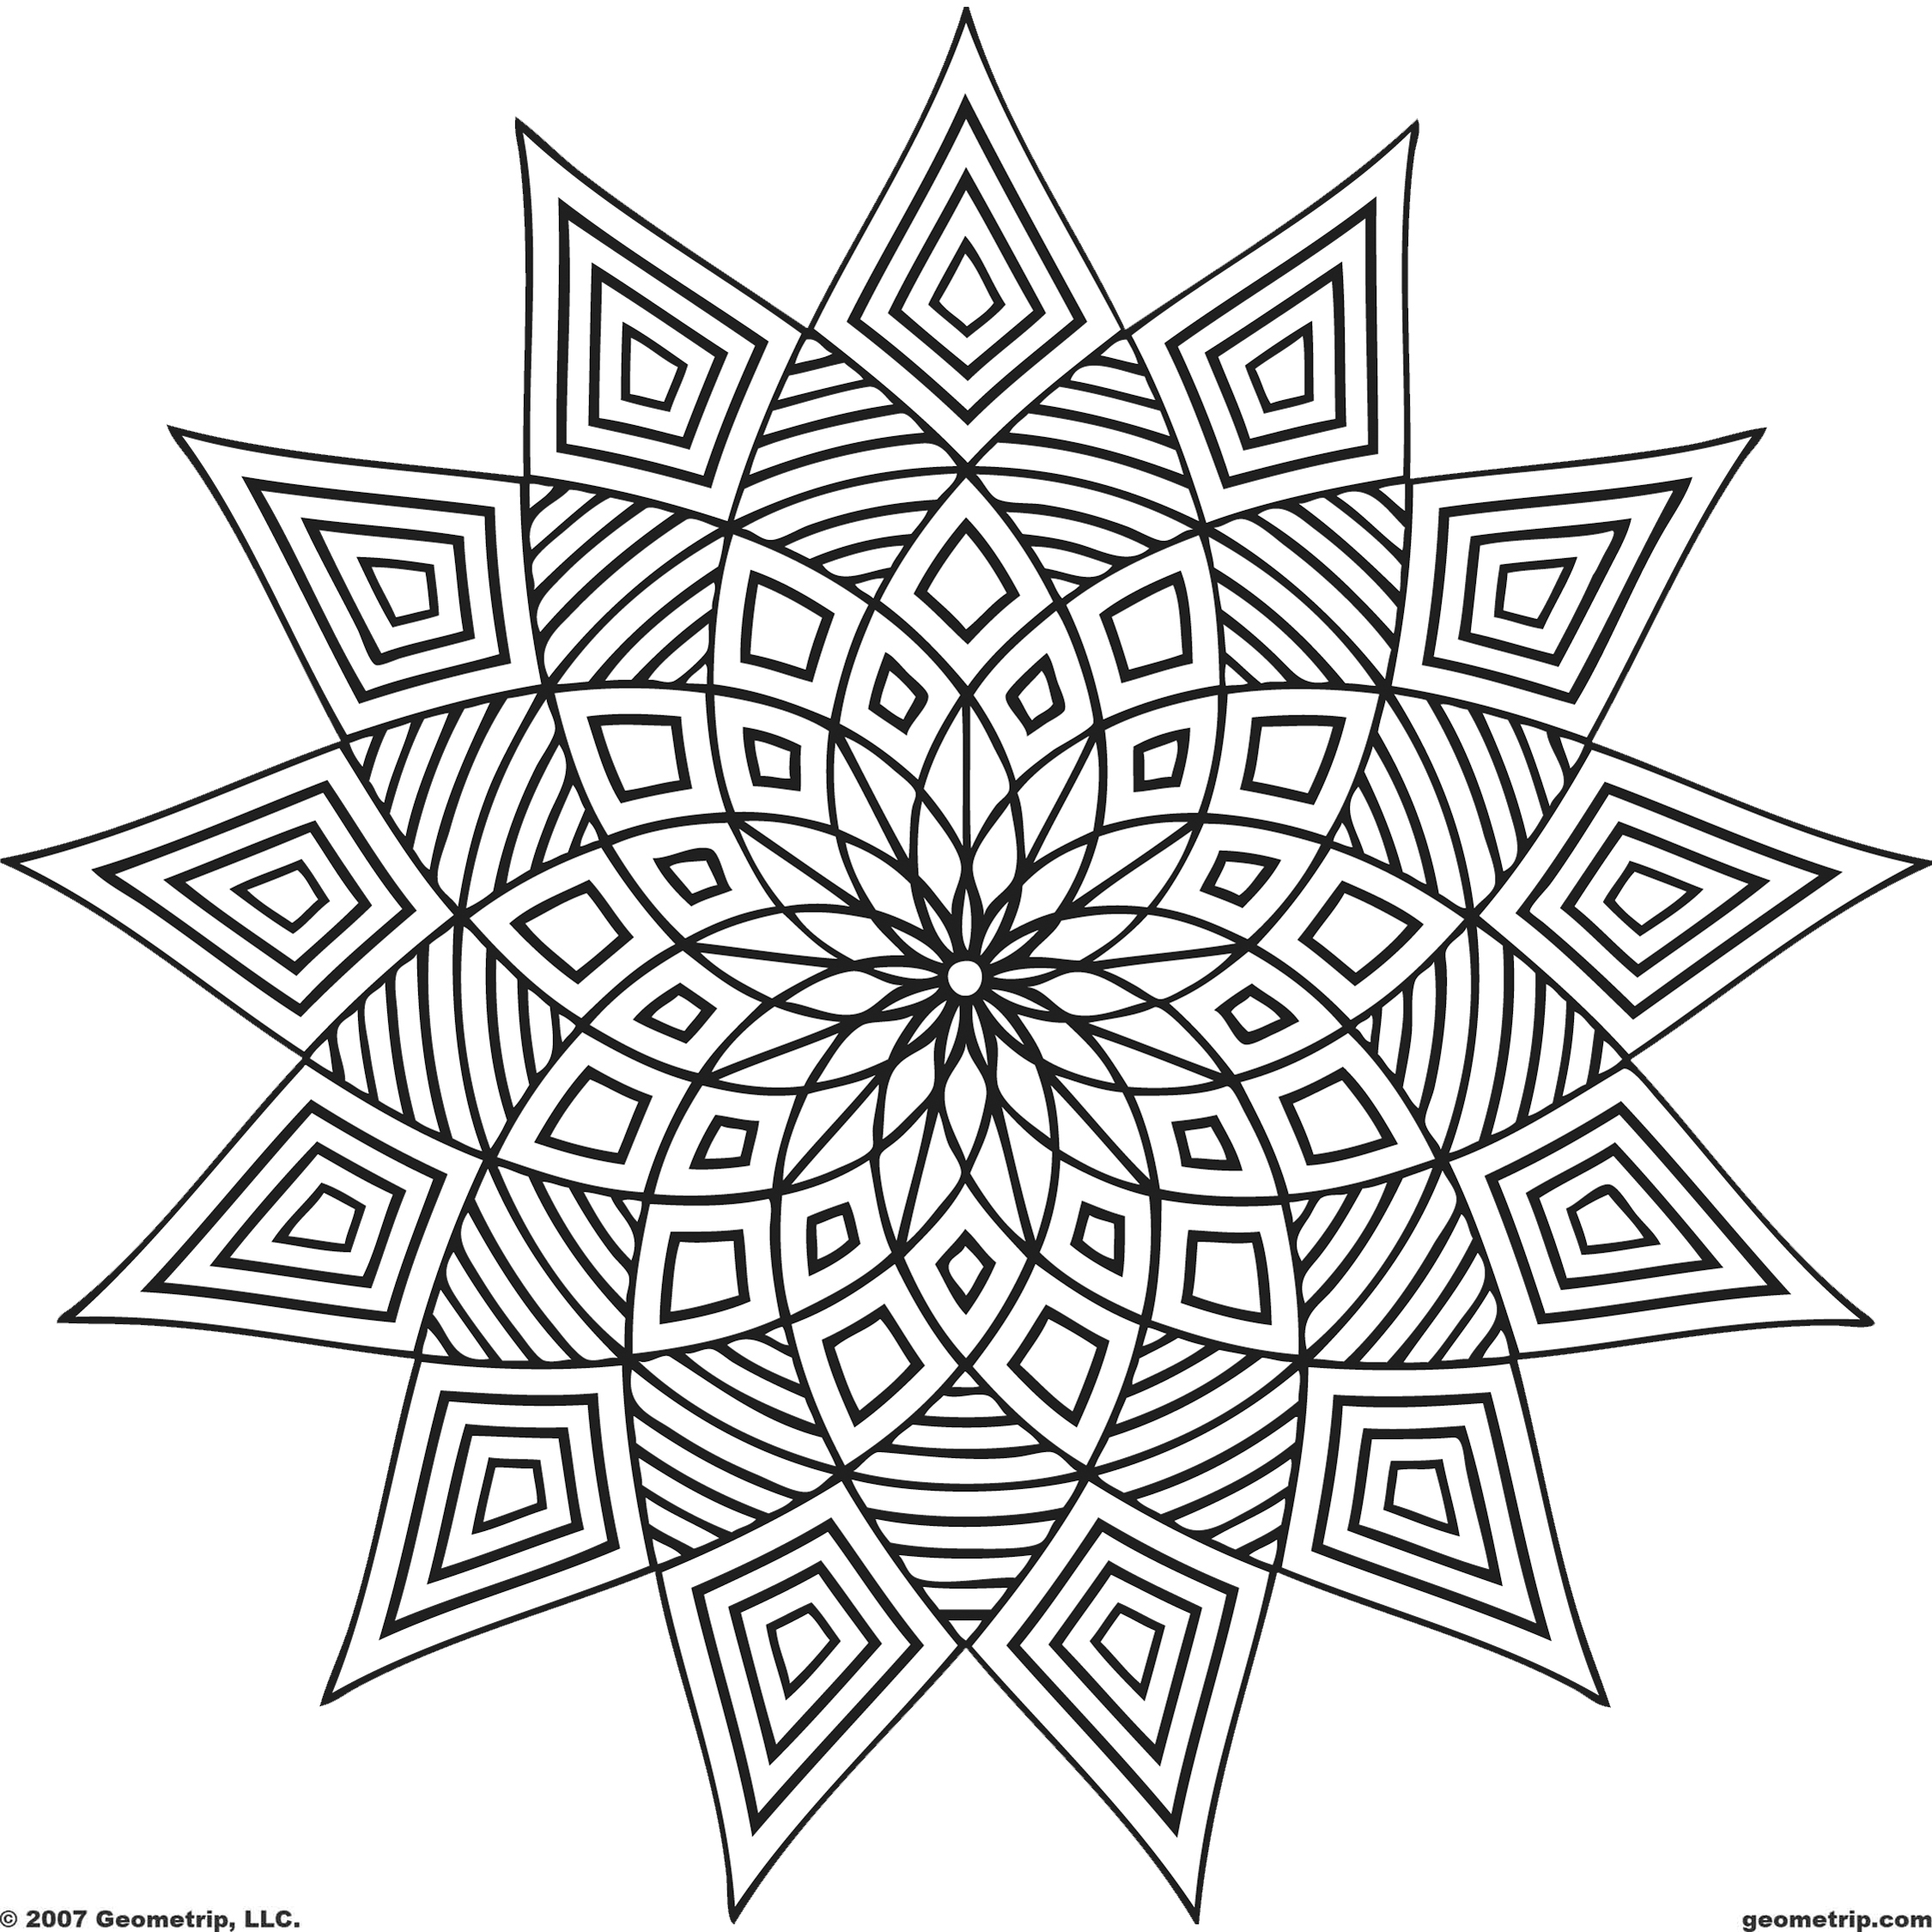 Complex Coloring Pages Online at GetDrawings.com | Free for personal ...